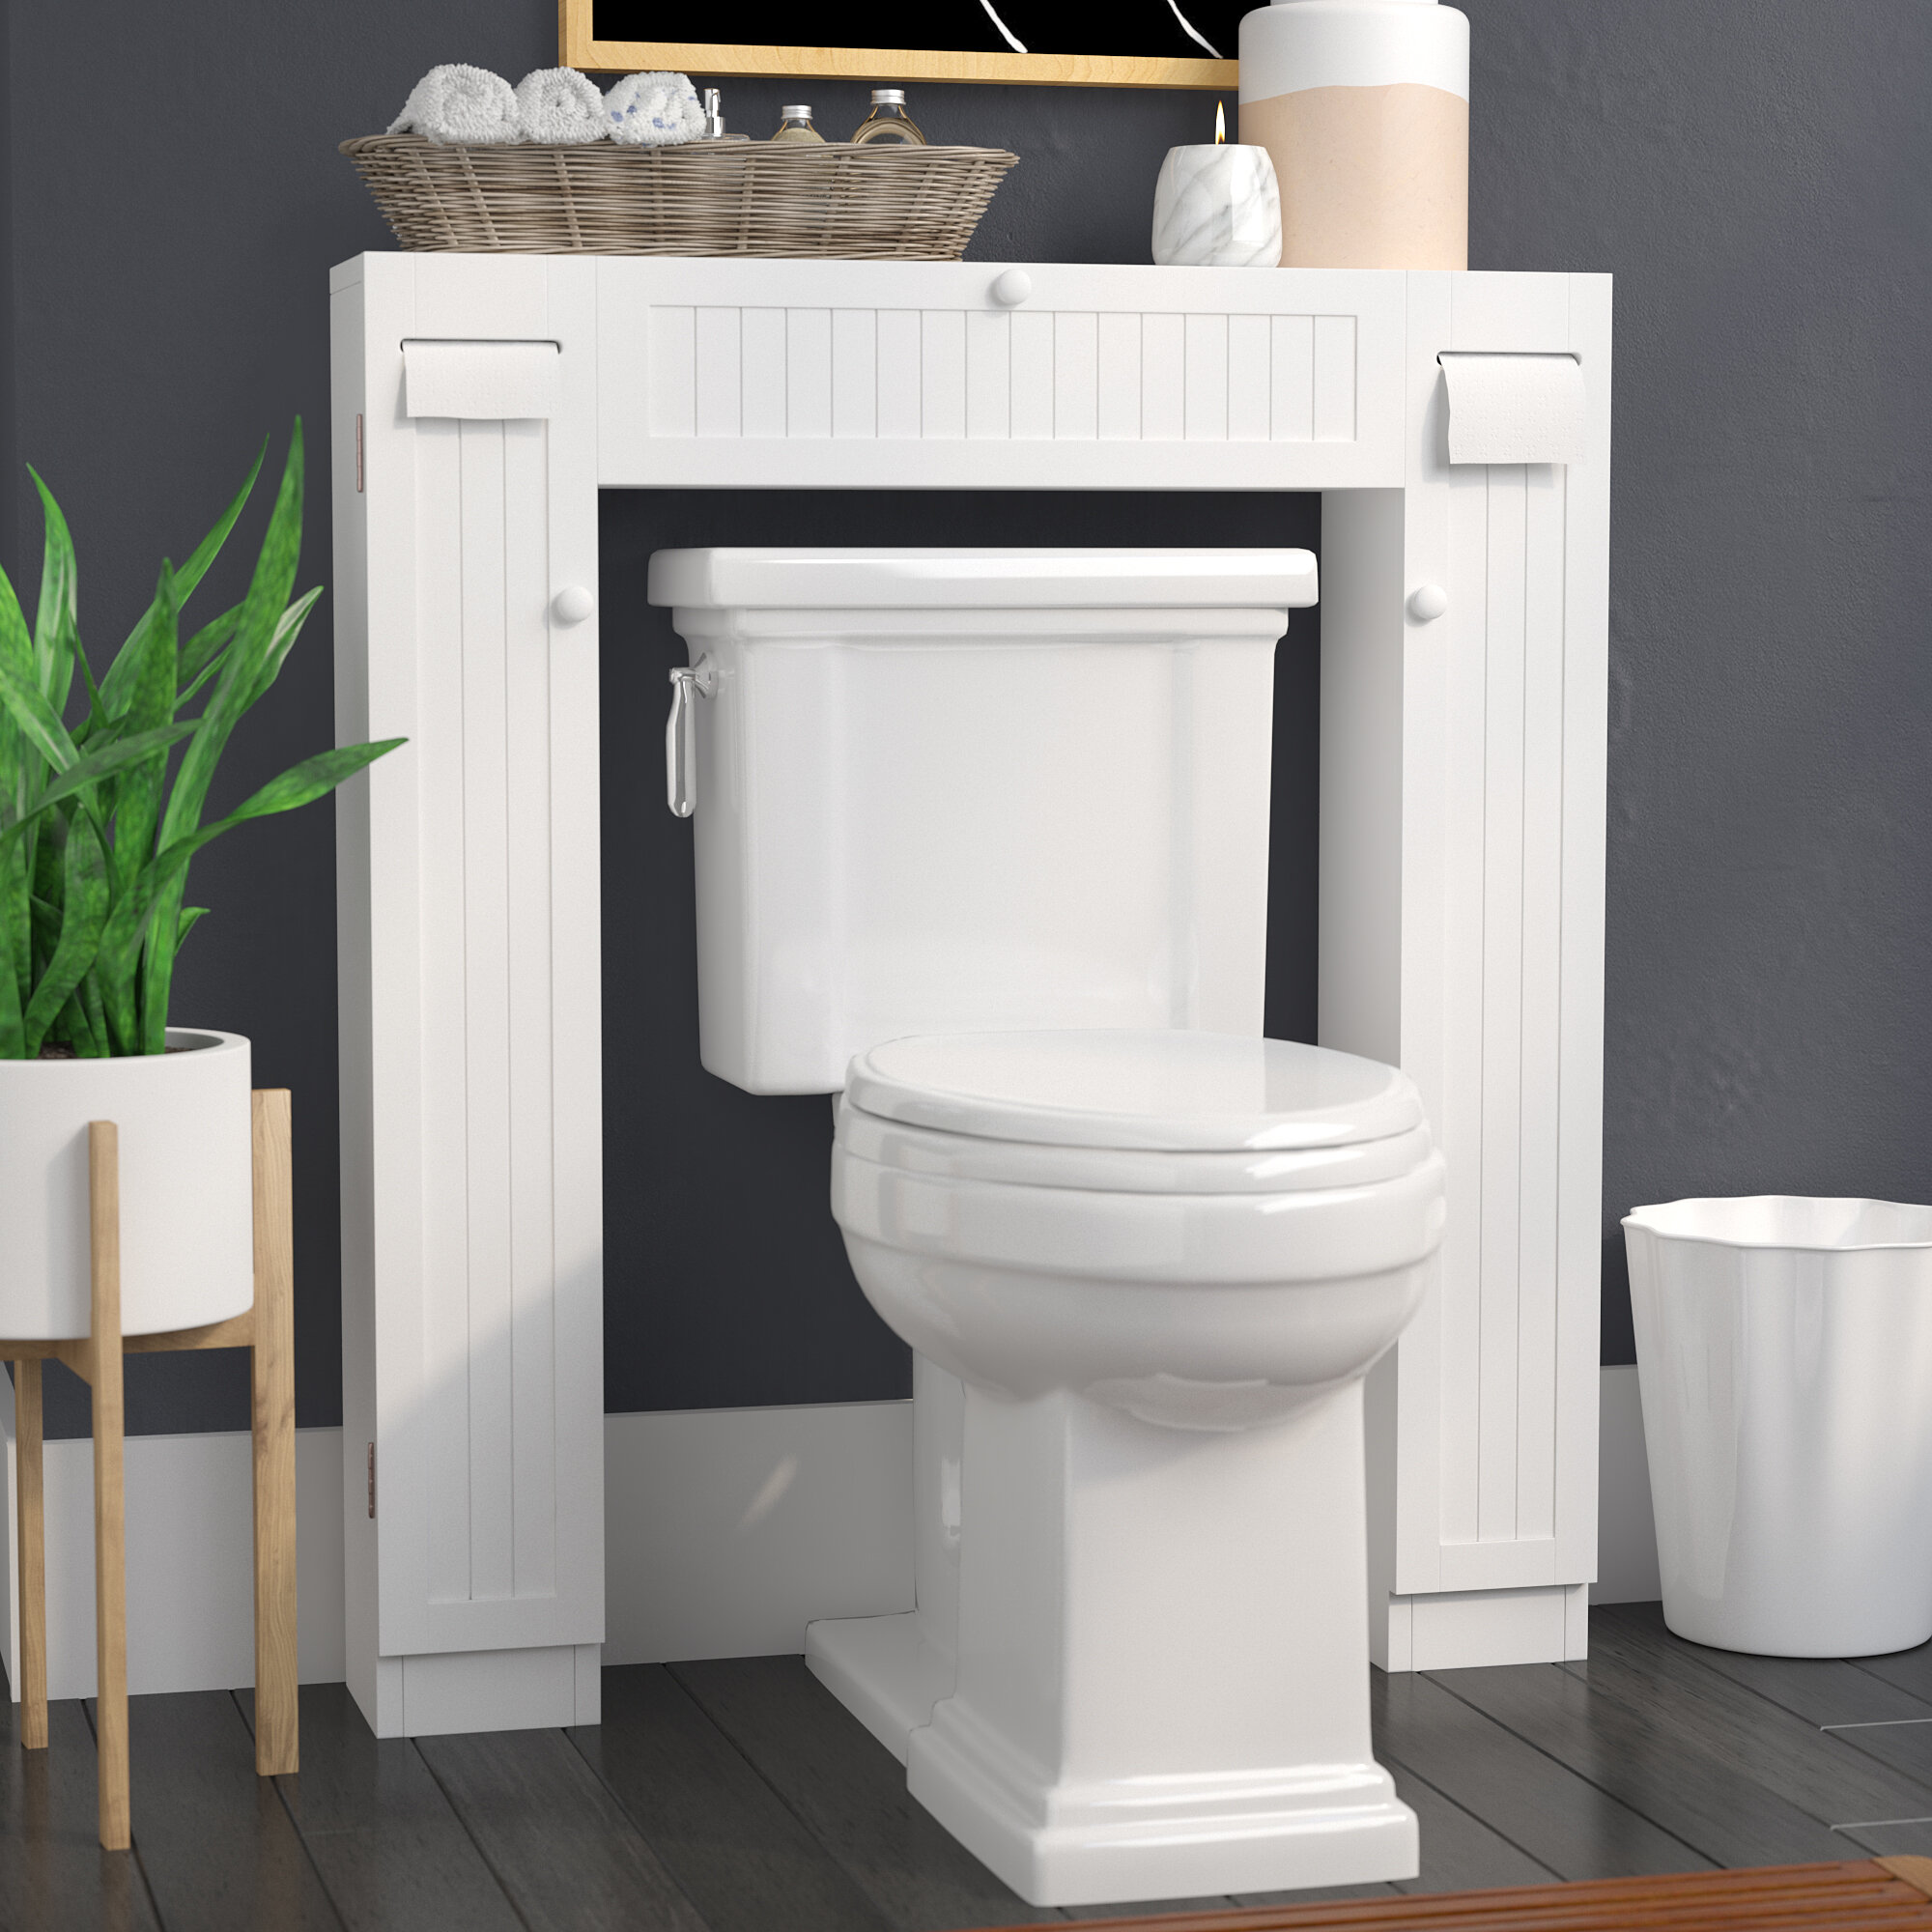 Wayfair The Twillery Co Eleanor 34 W X 38 5 H Over The Toilet